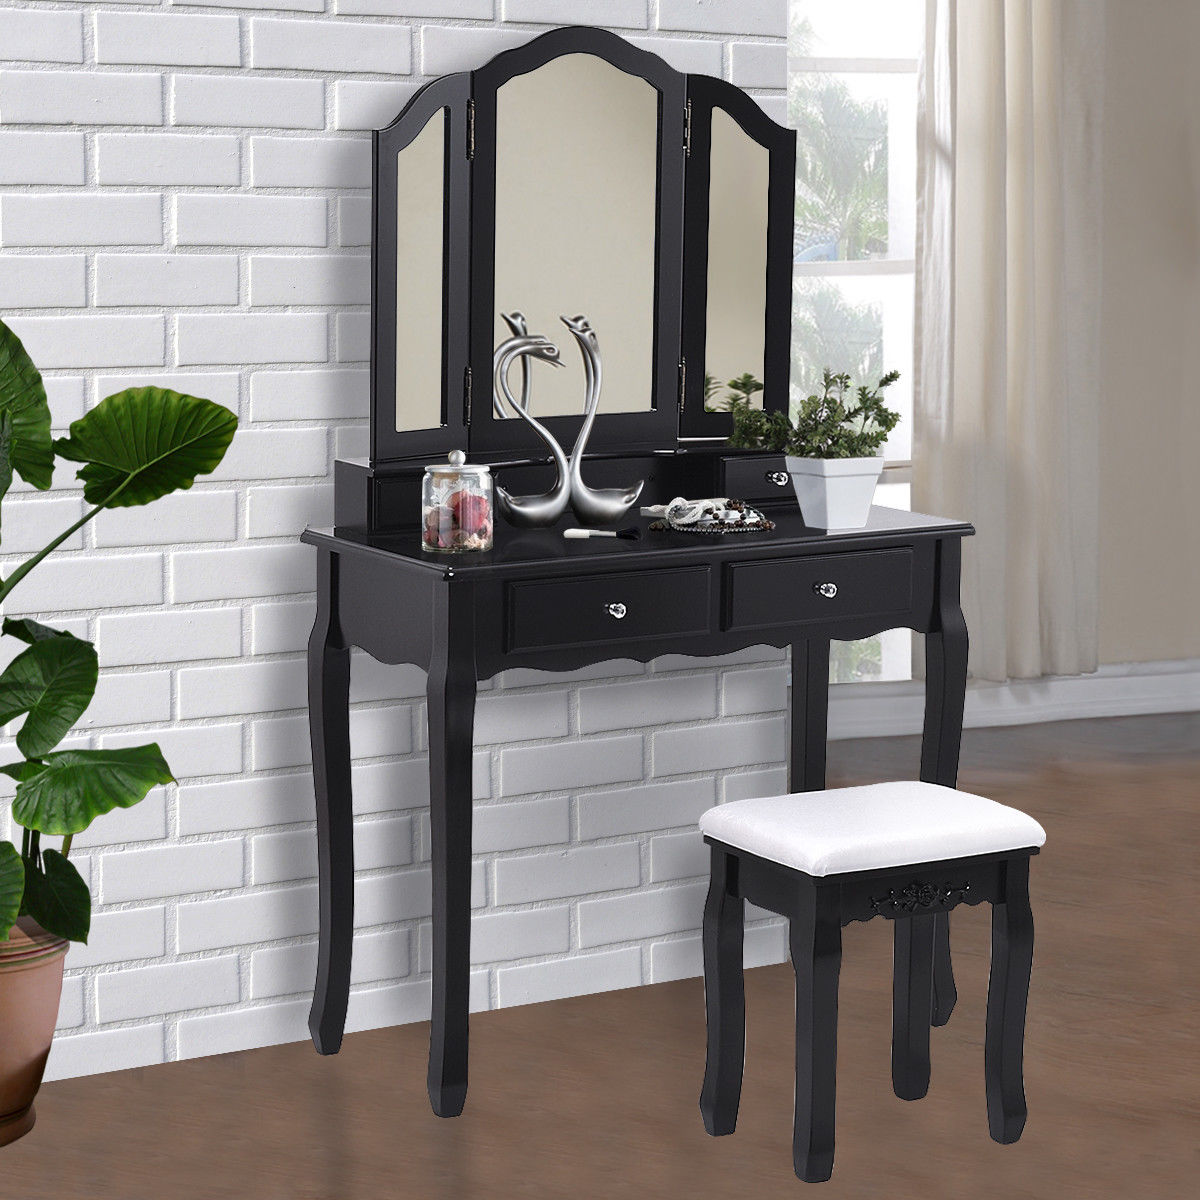 Giantex Black Tri Folding Mirror Vanity Makeup Dressing Table Stool Set Modern Home Bedroom Furniture With 4 Drawers HW55563BK dressing table makeup desk dresser 1 mirror 4 drawers european bedroom furniture make up mesa bedroom penteadeira with stool